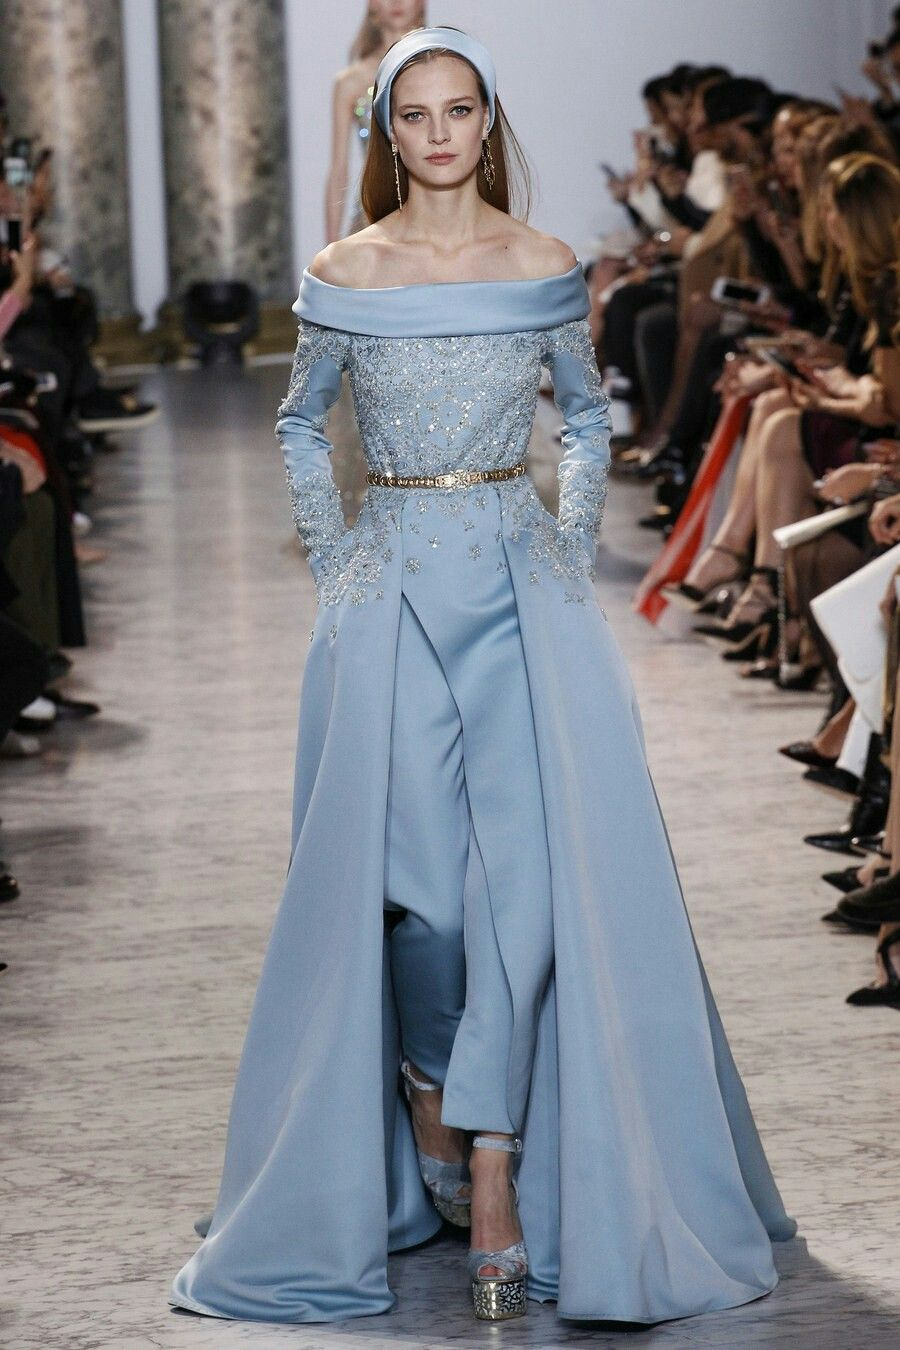 Best dressed from Elie Saab Haute Couture Spring 2017 | Spring ...